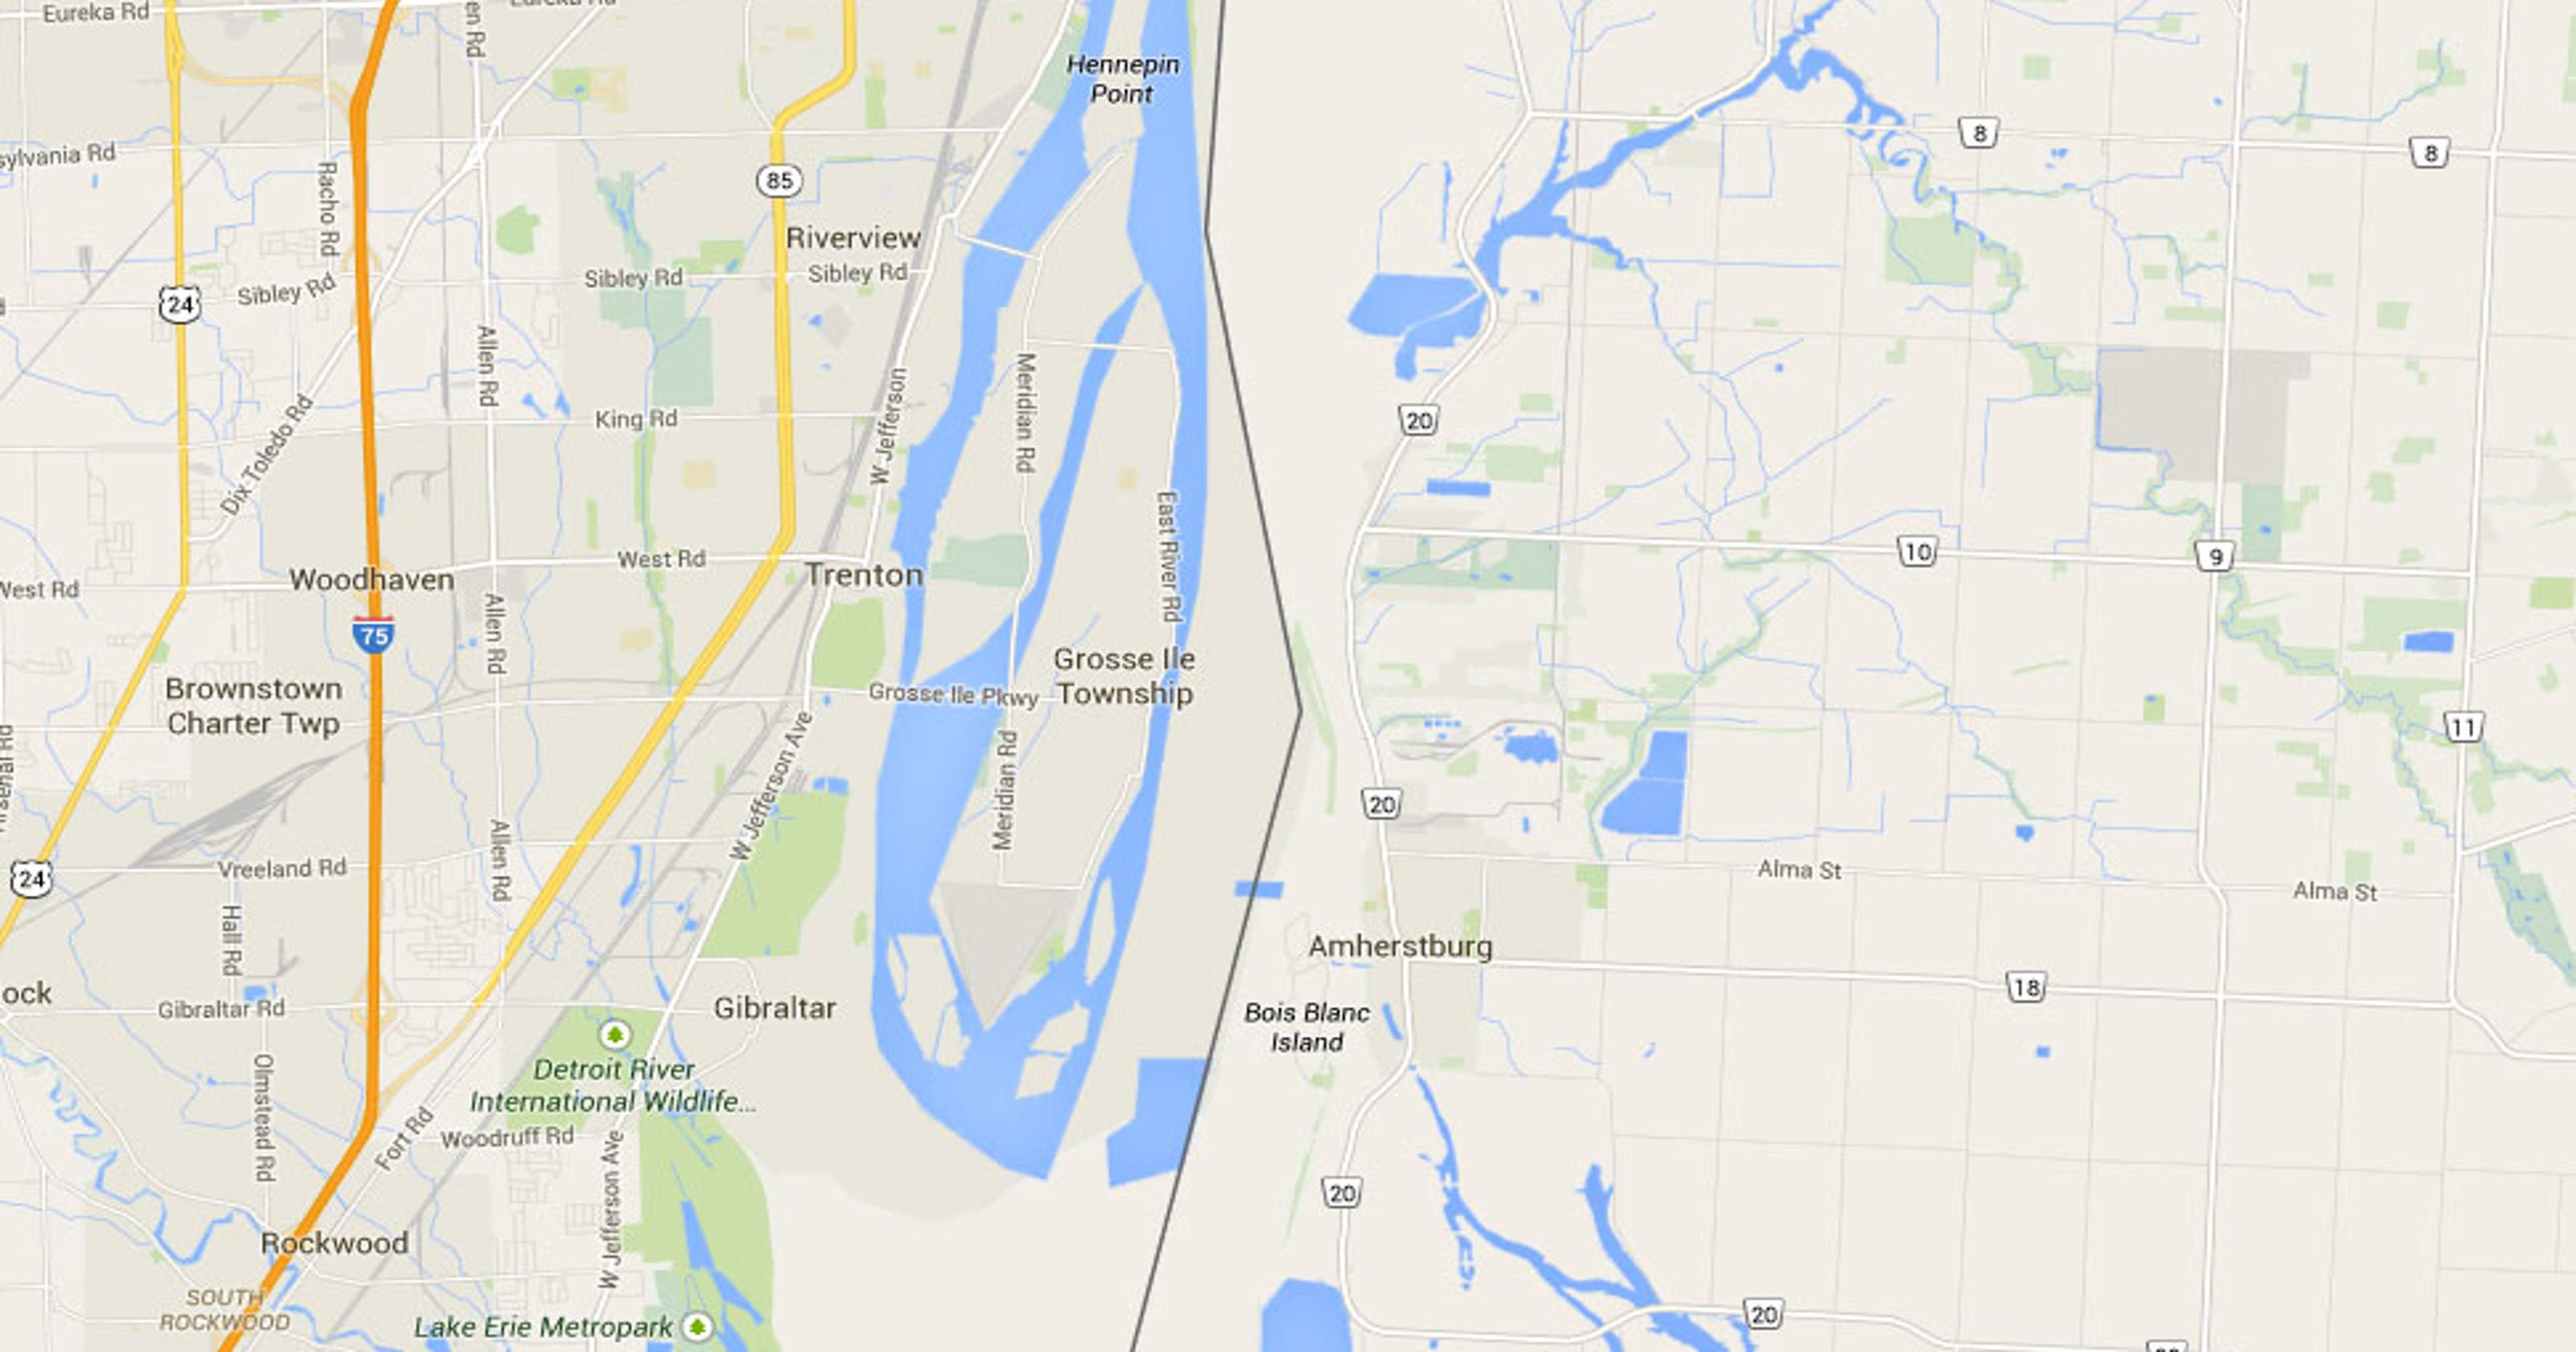 Google Maps Shows Land Bridge From Downriver To Canada